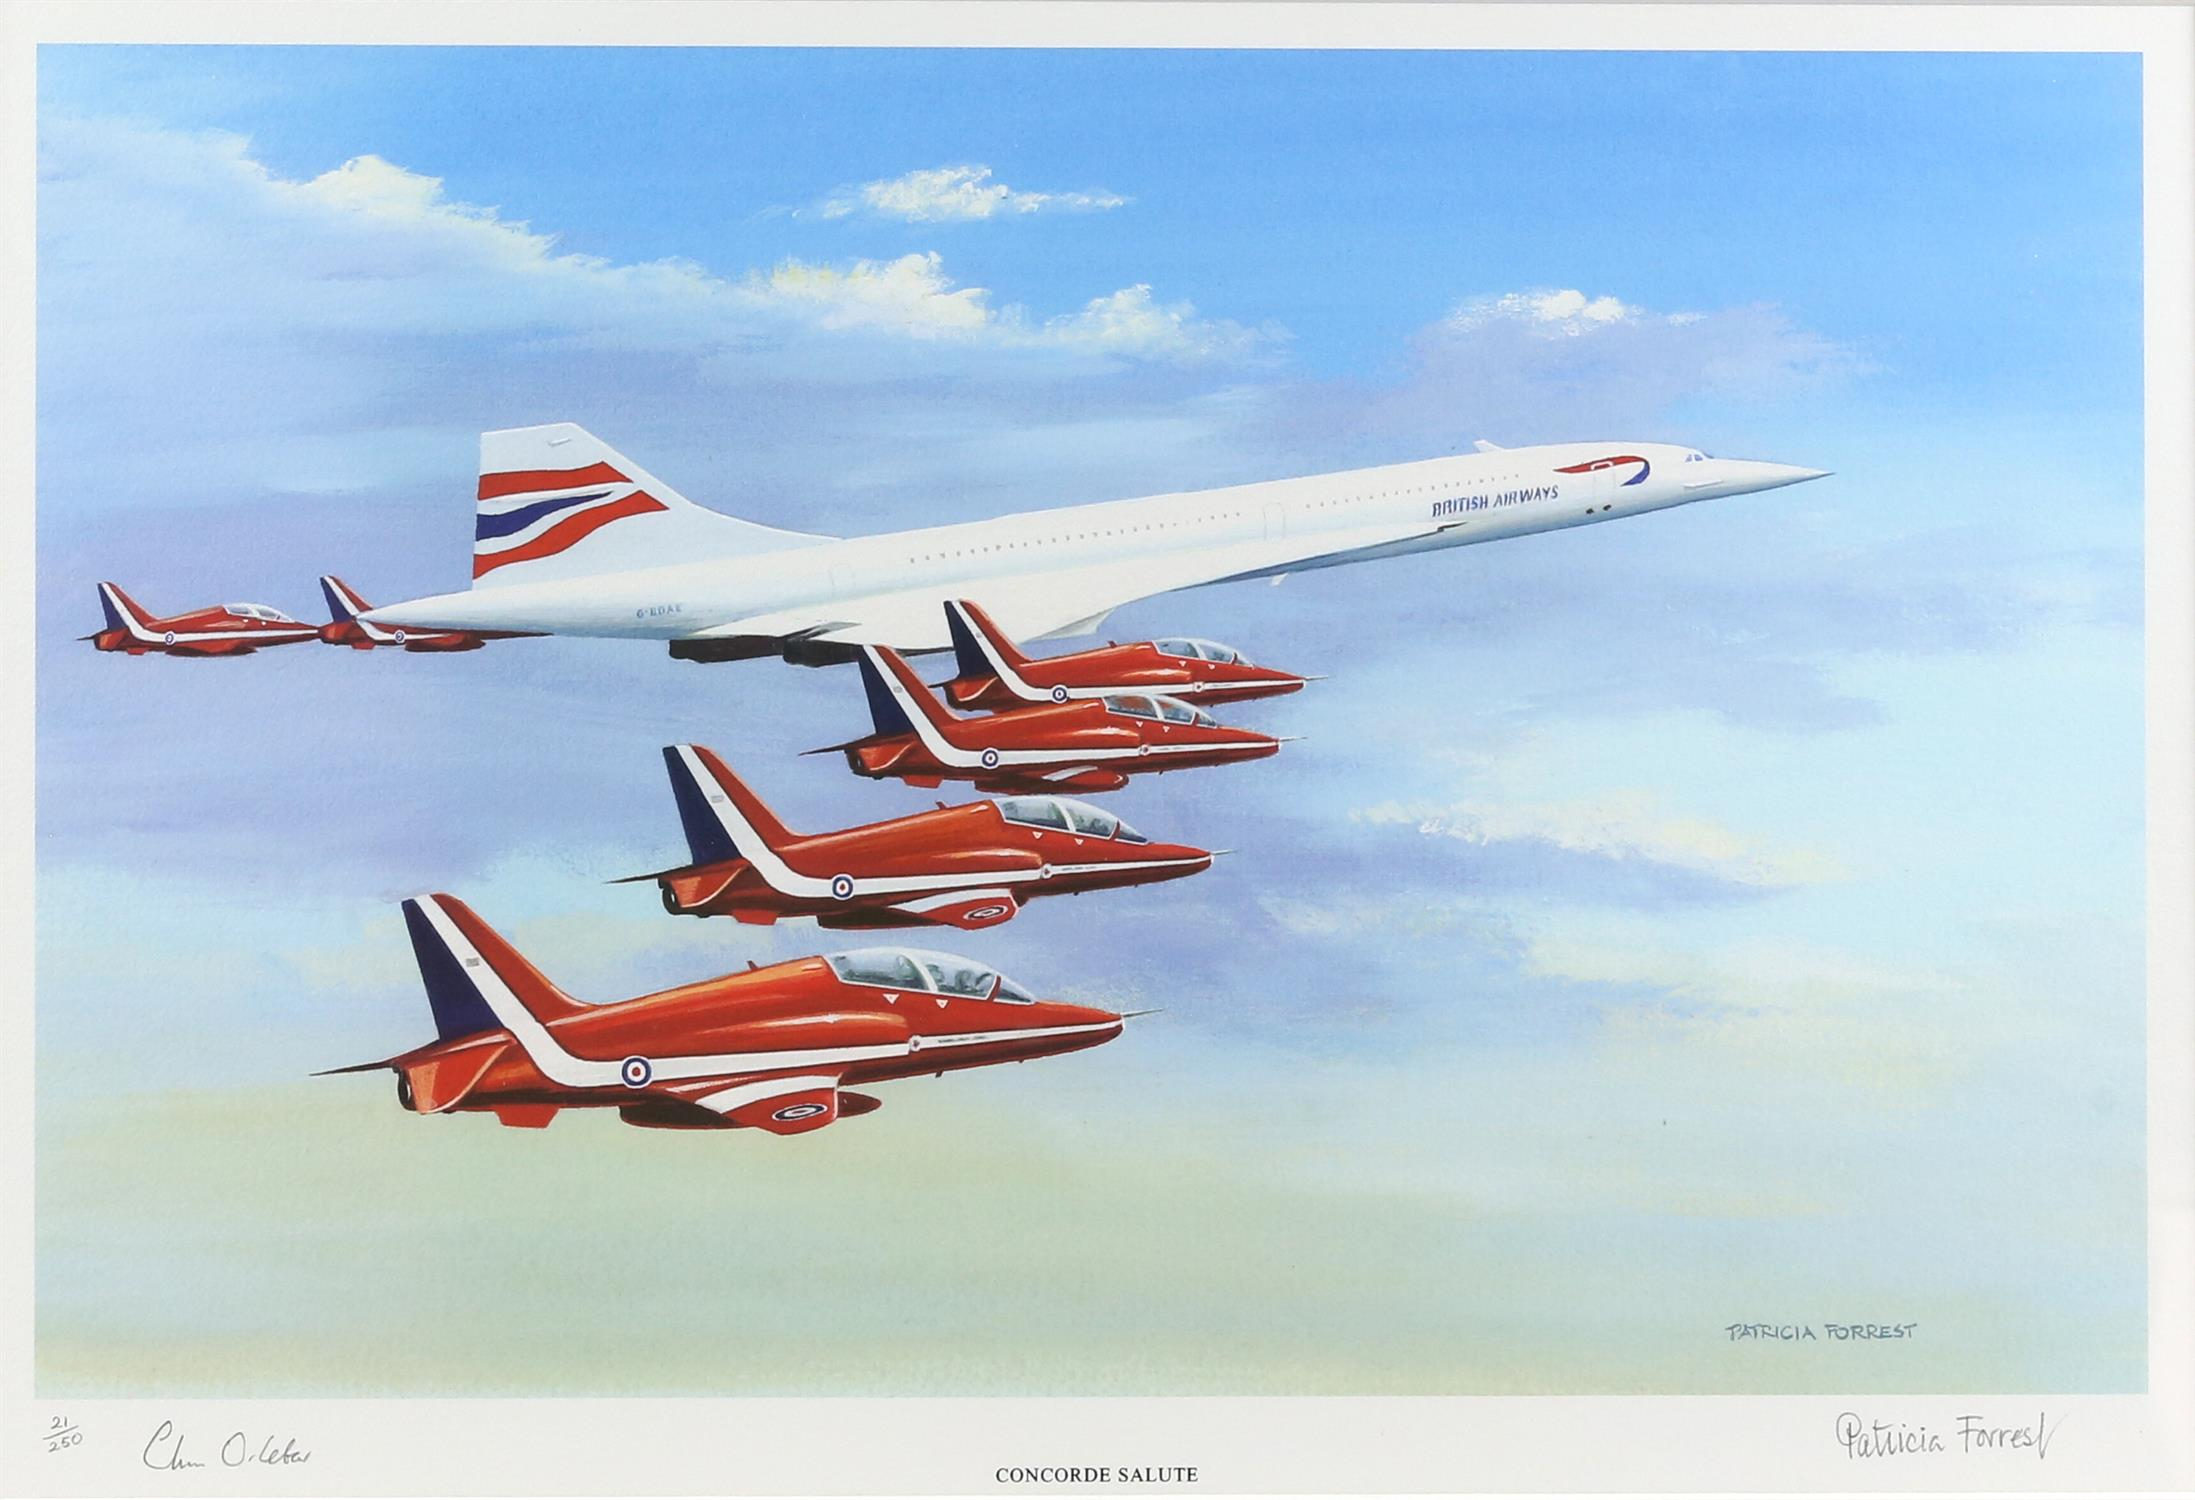 Patricia Forrest (20th Century). 'Concorde Salute', limited edition print, titled,